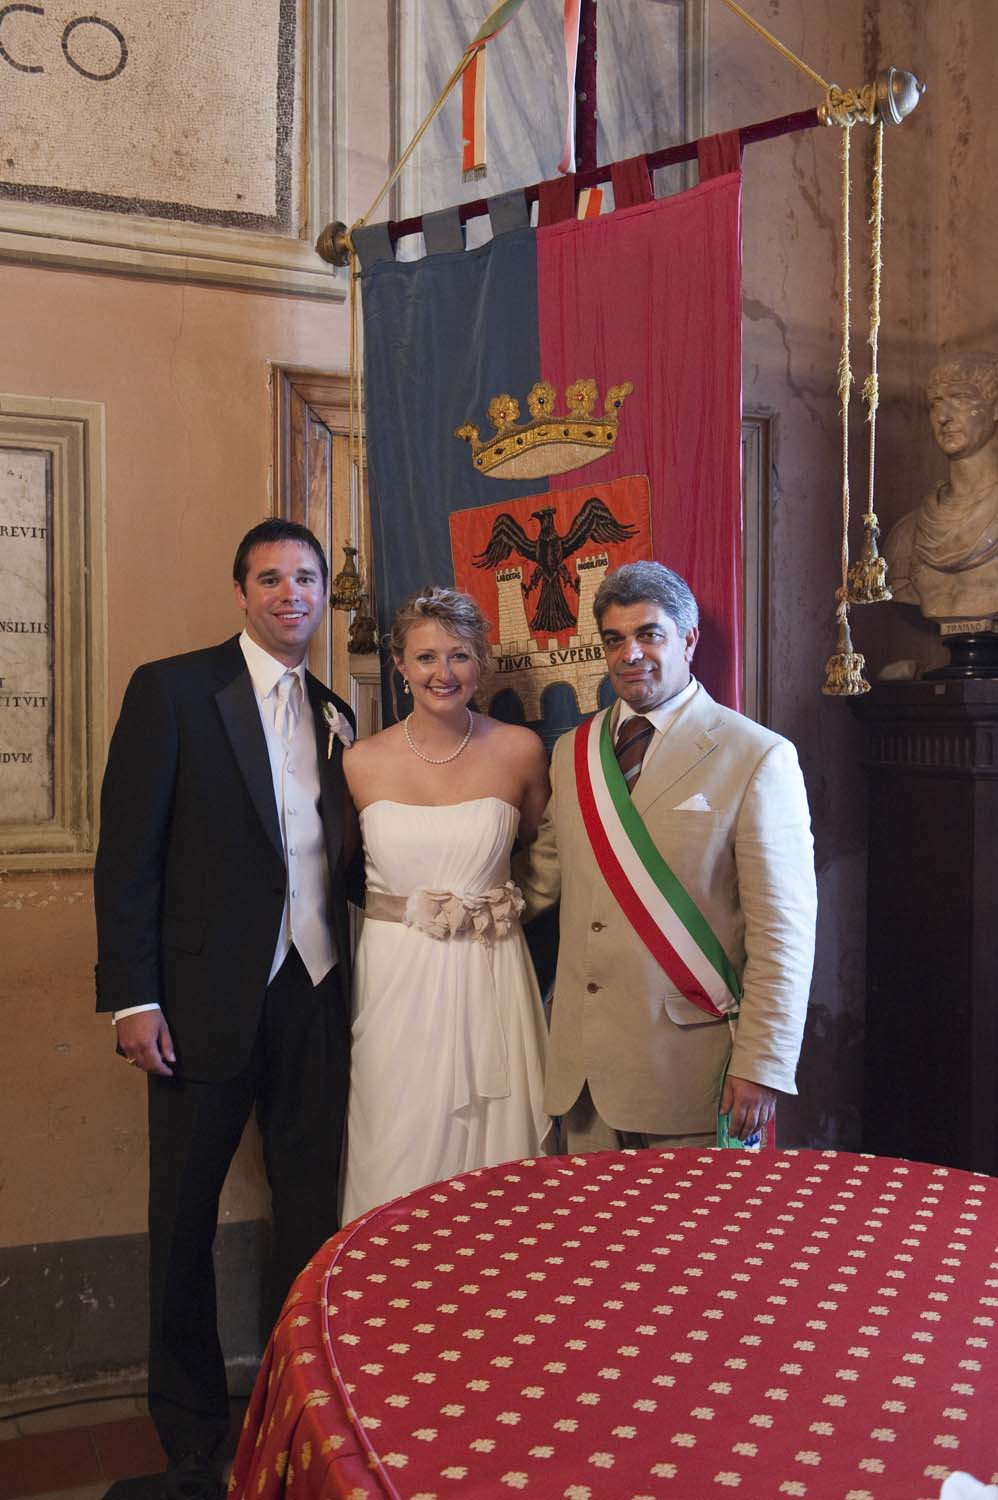 Bride, groom and the Mayor after the ceremony in Tivoli, Rome